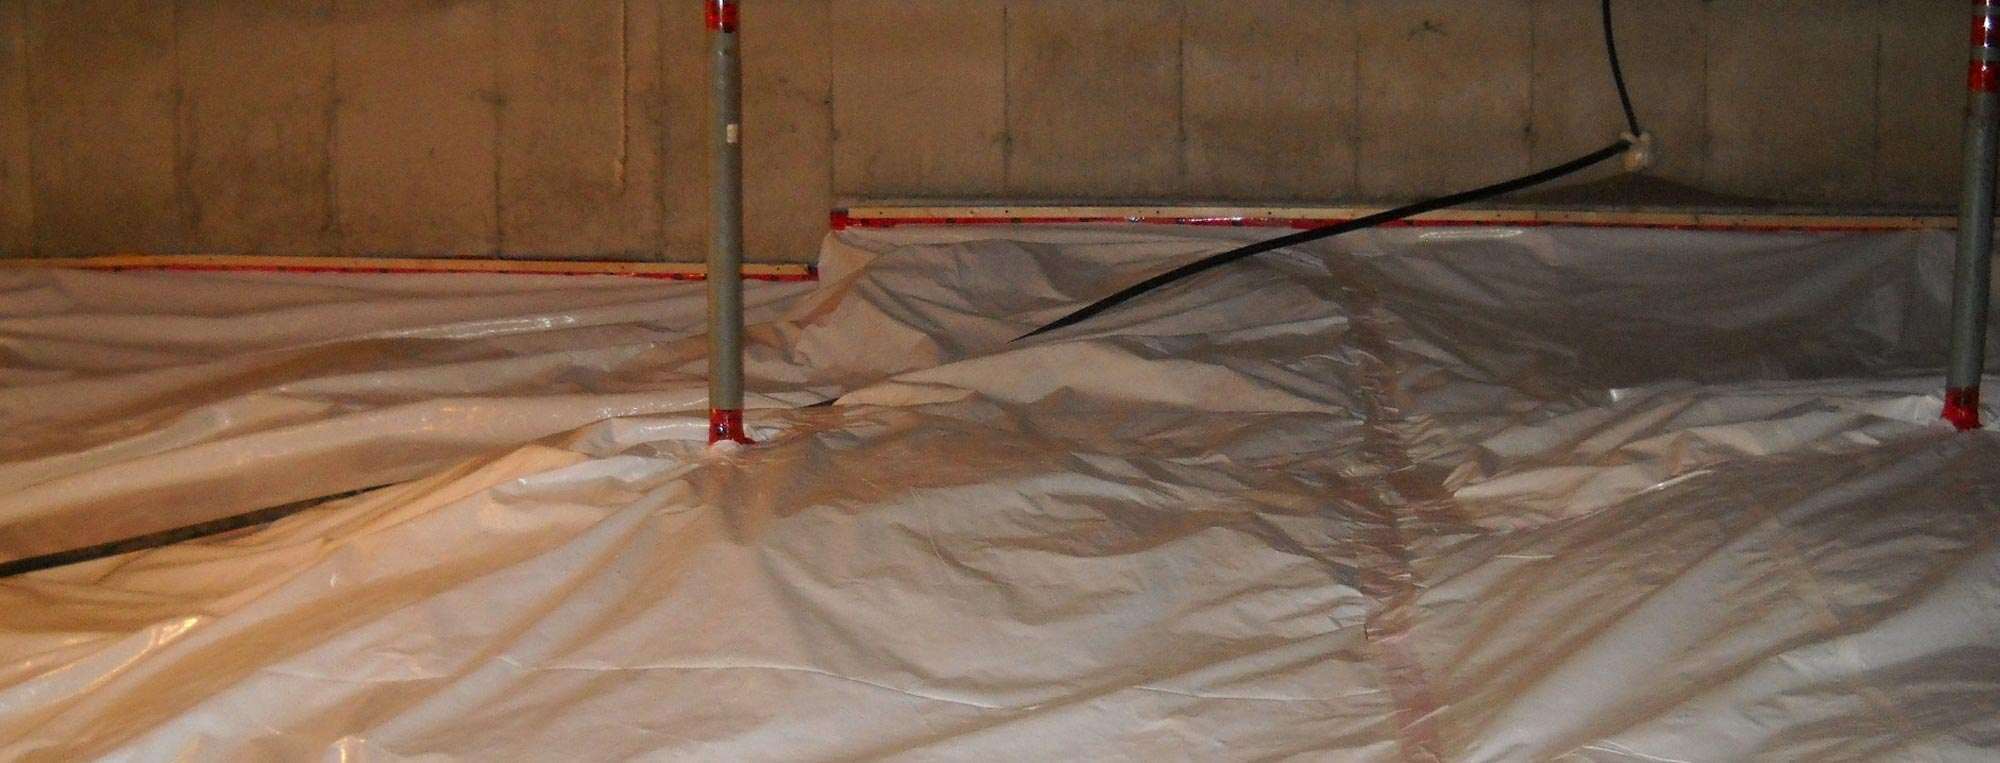 radon-works-exposed-soil-crawlspaces-experts